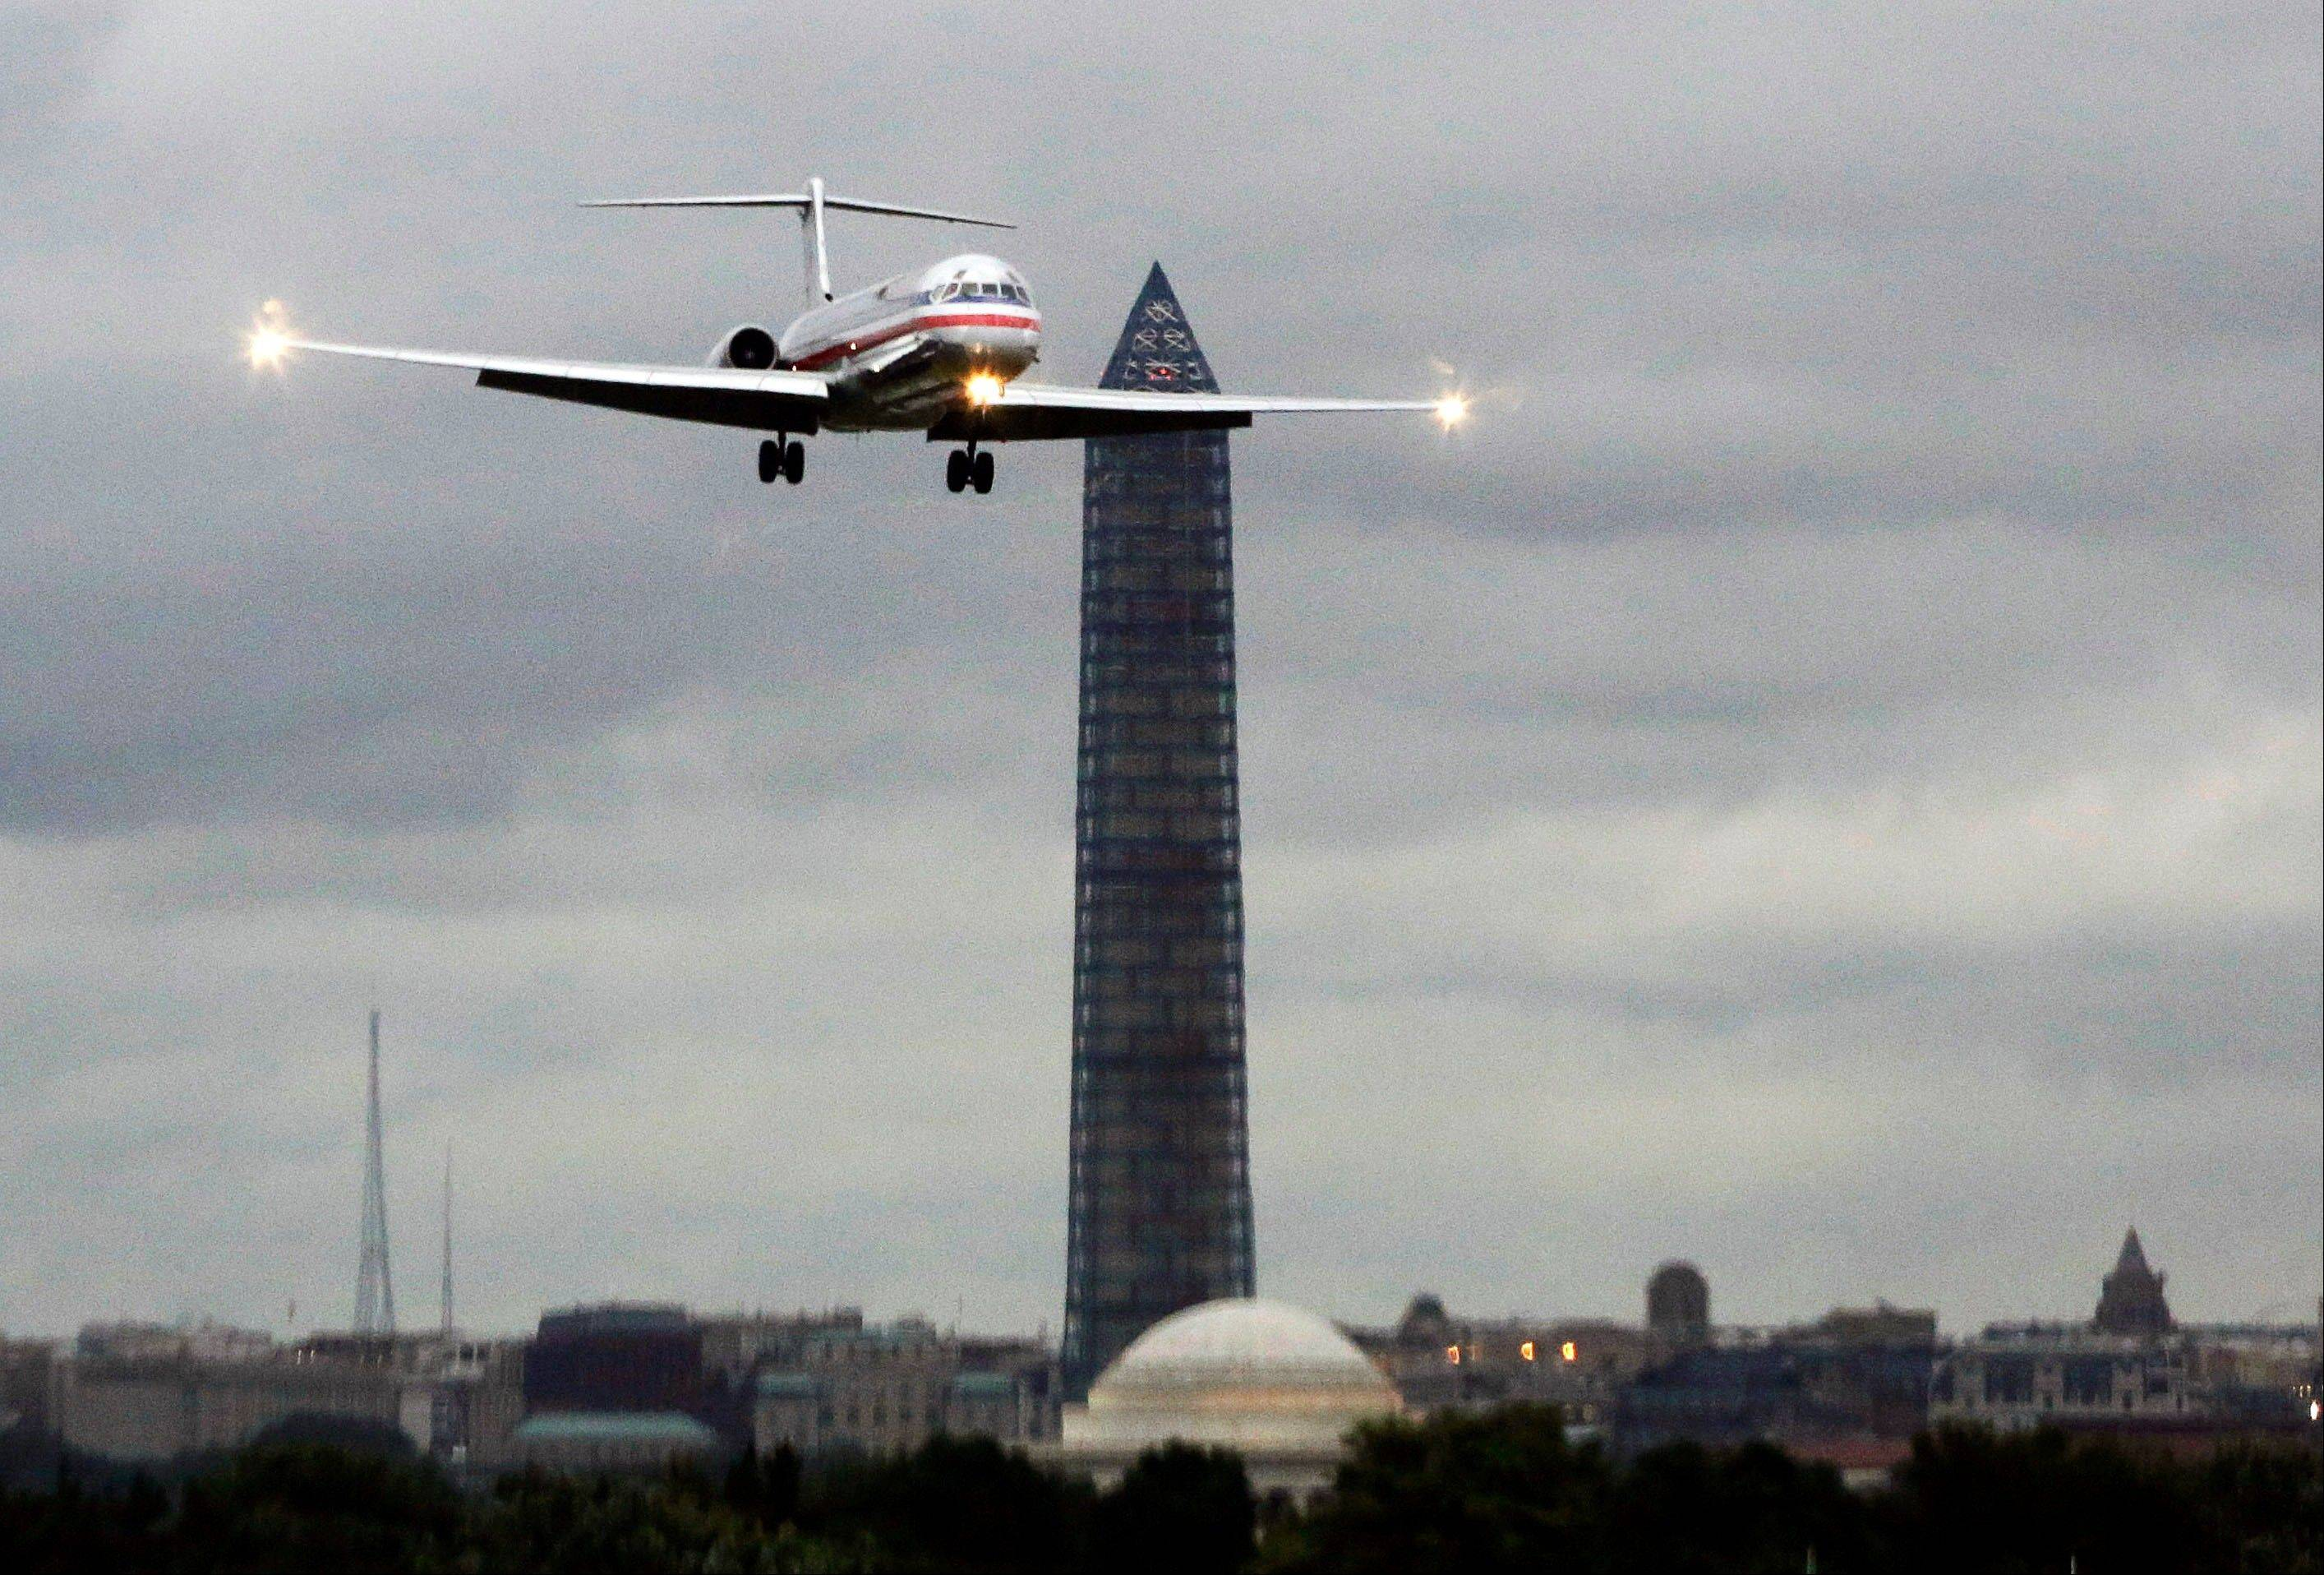 An American Airlines jet passes the Washington Monument as it lands at Ronald Reagan National Airport, in Washington, D.C.